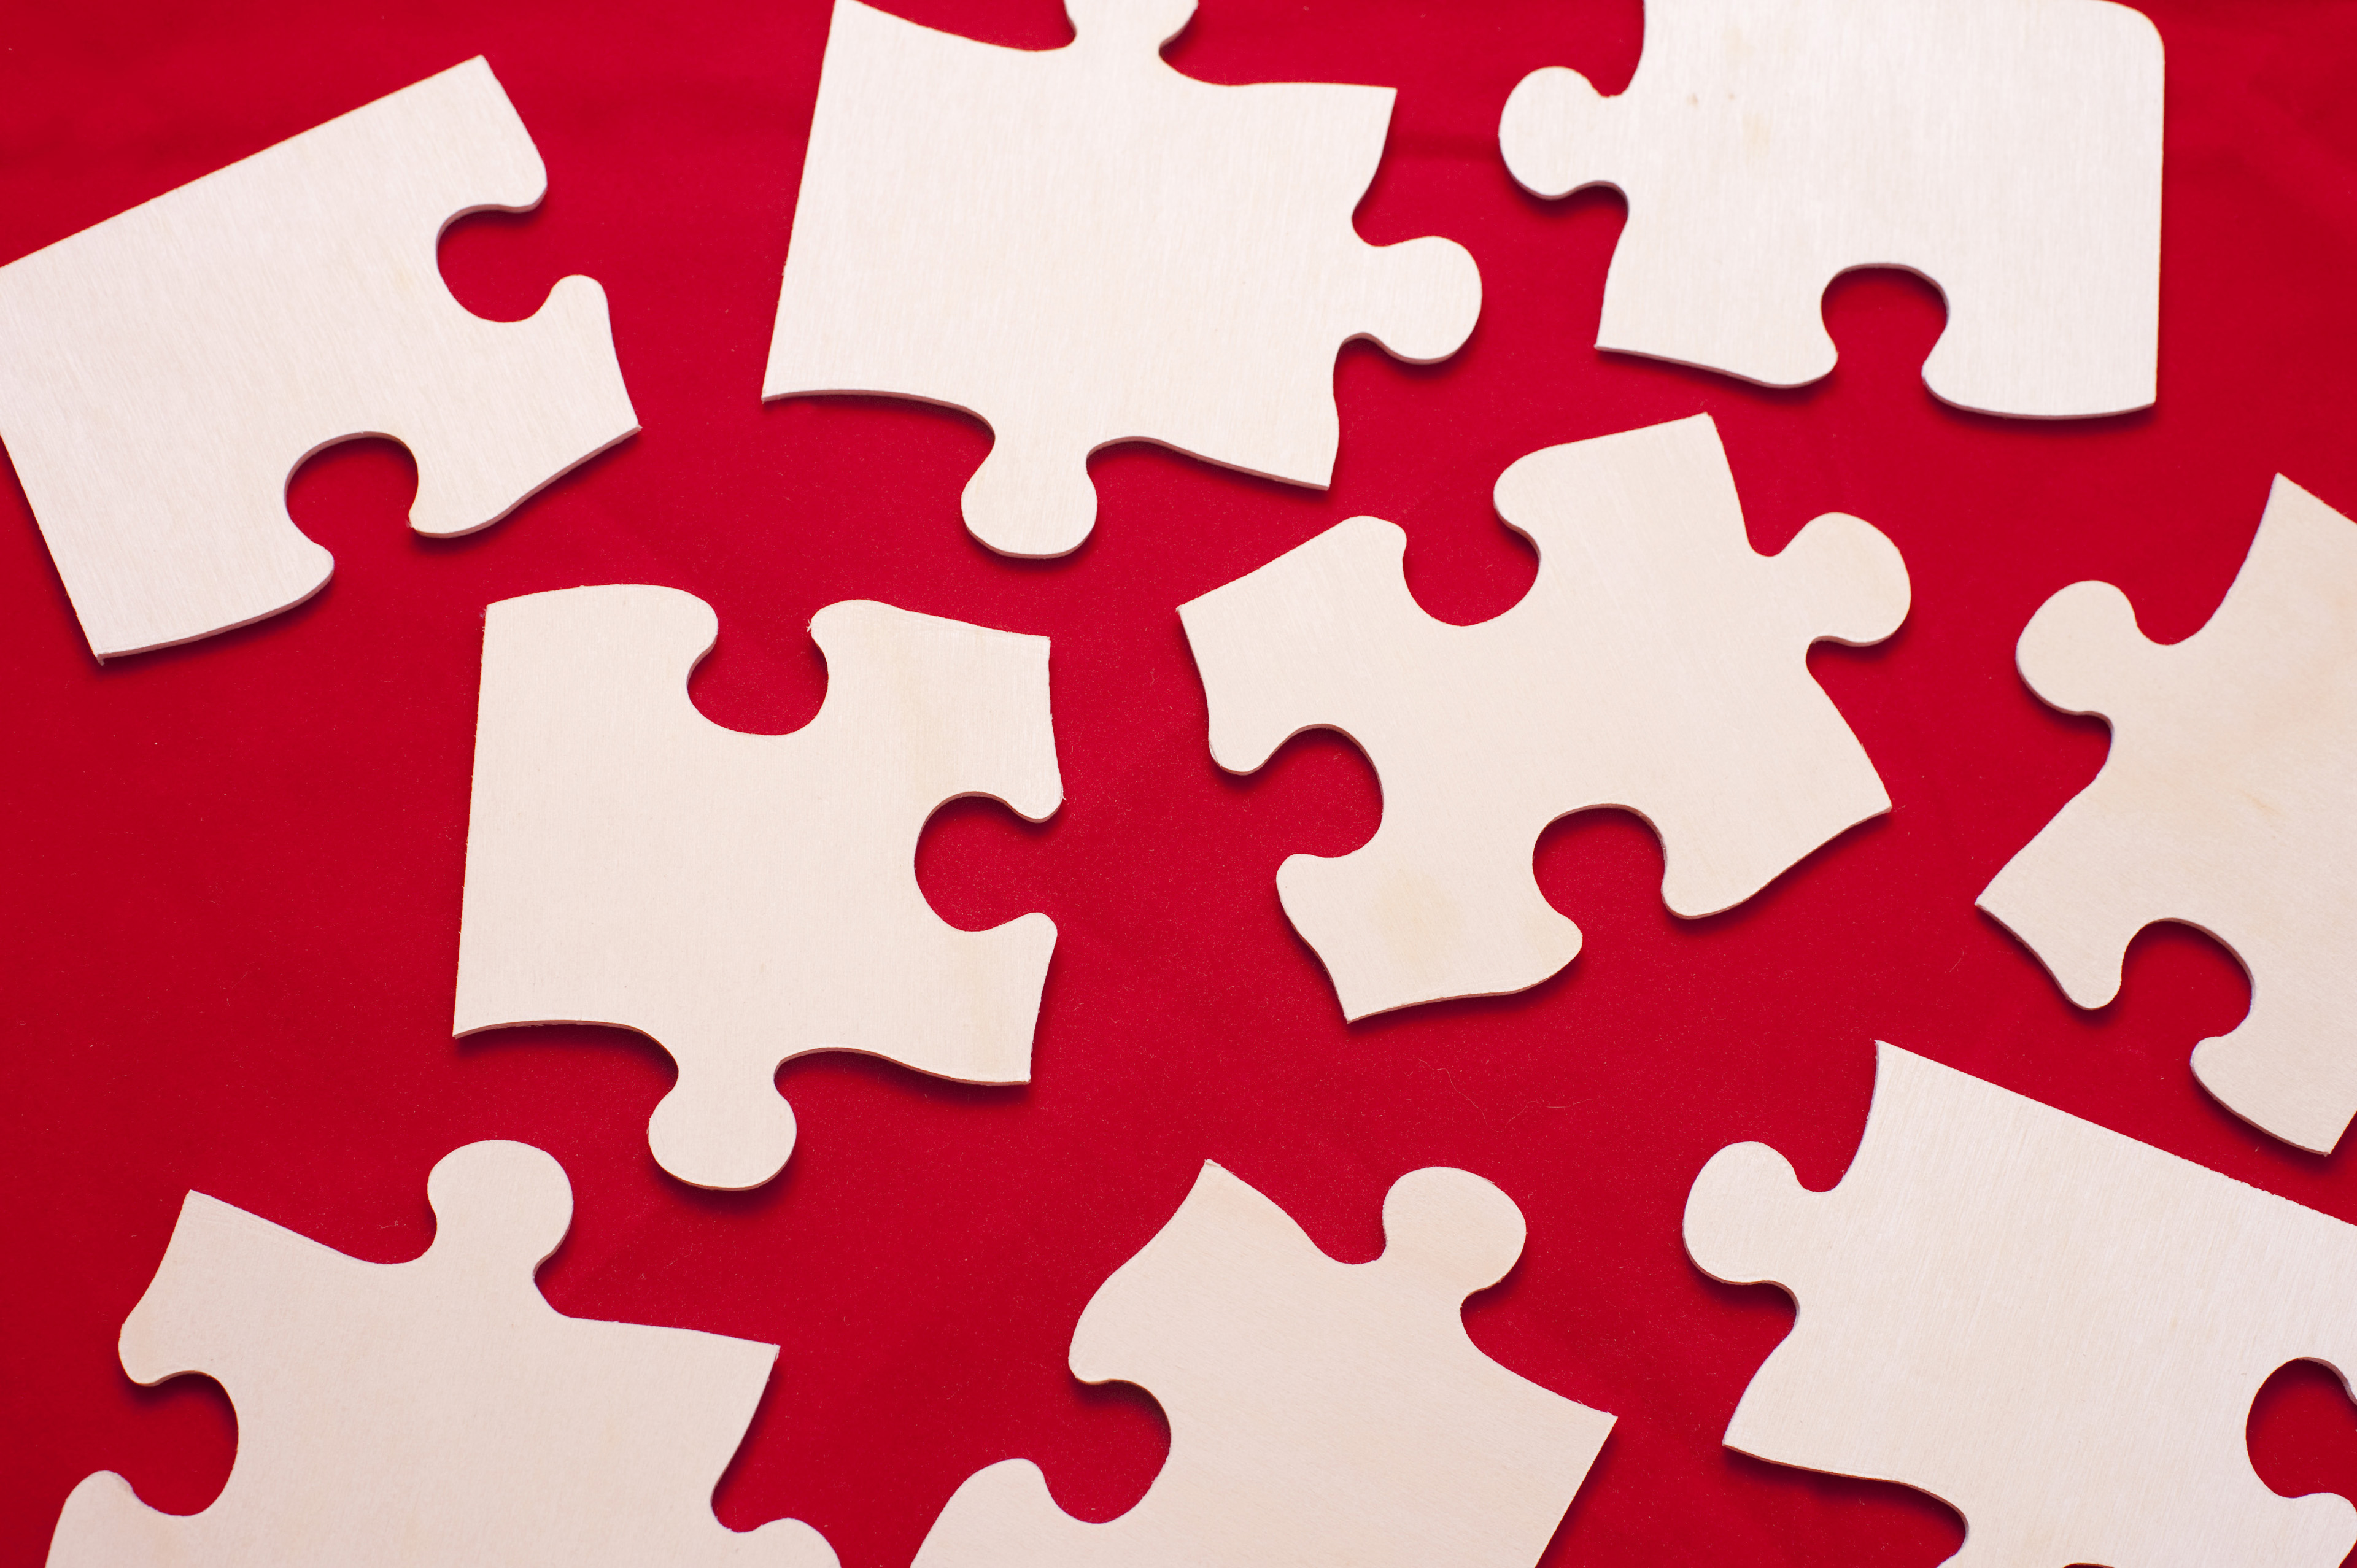 Overhead view of a group of differently shaped scattered white puzzle pieces on a red background in a problem solving concept